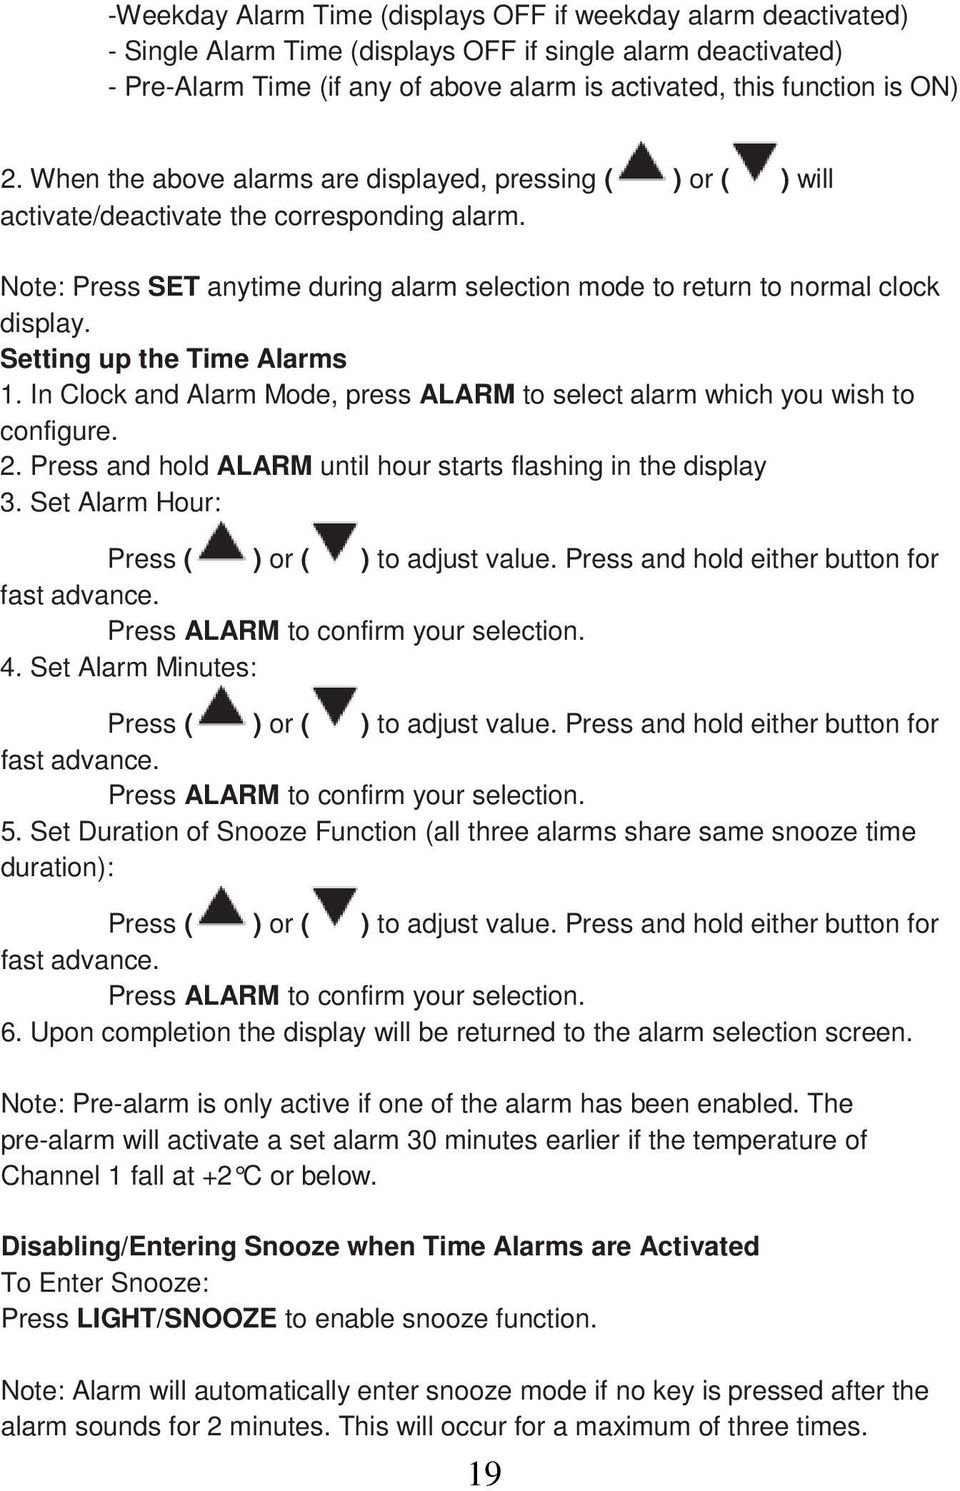 Setting up the Time Alarms 1. In Clock and Alarm Mode, press ALARM to select alarm which you wish to configure. 2. Press and hold ALARM until hour starts flashing in the display 3.